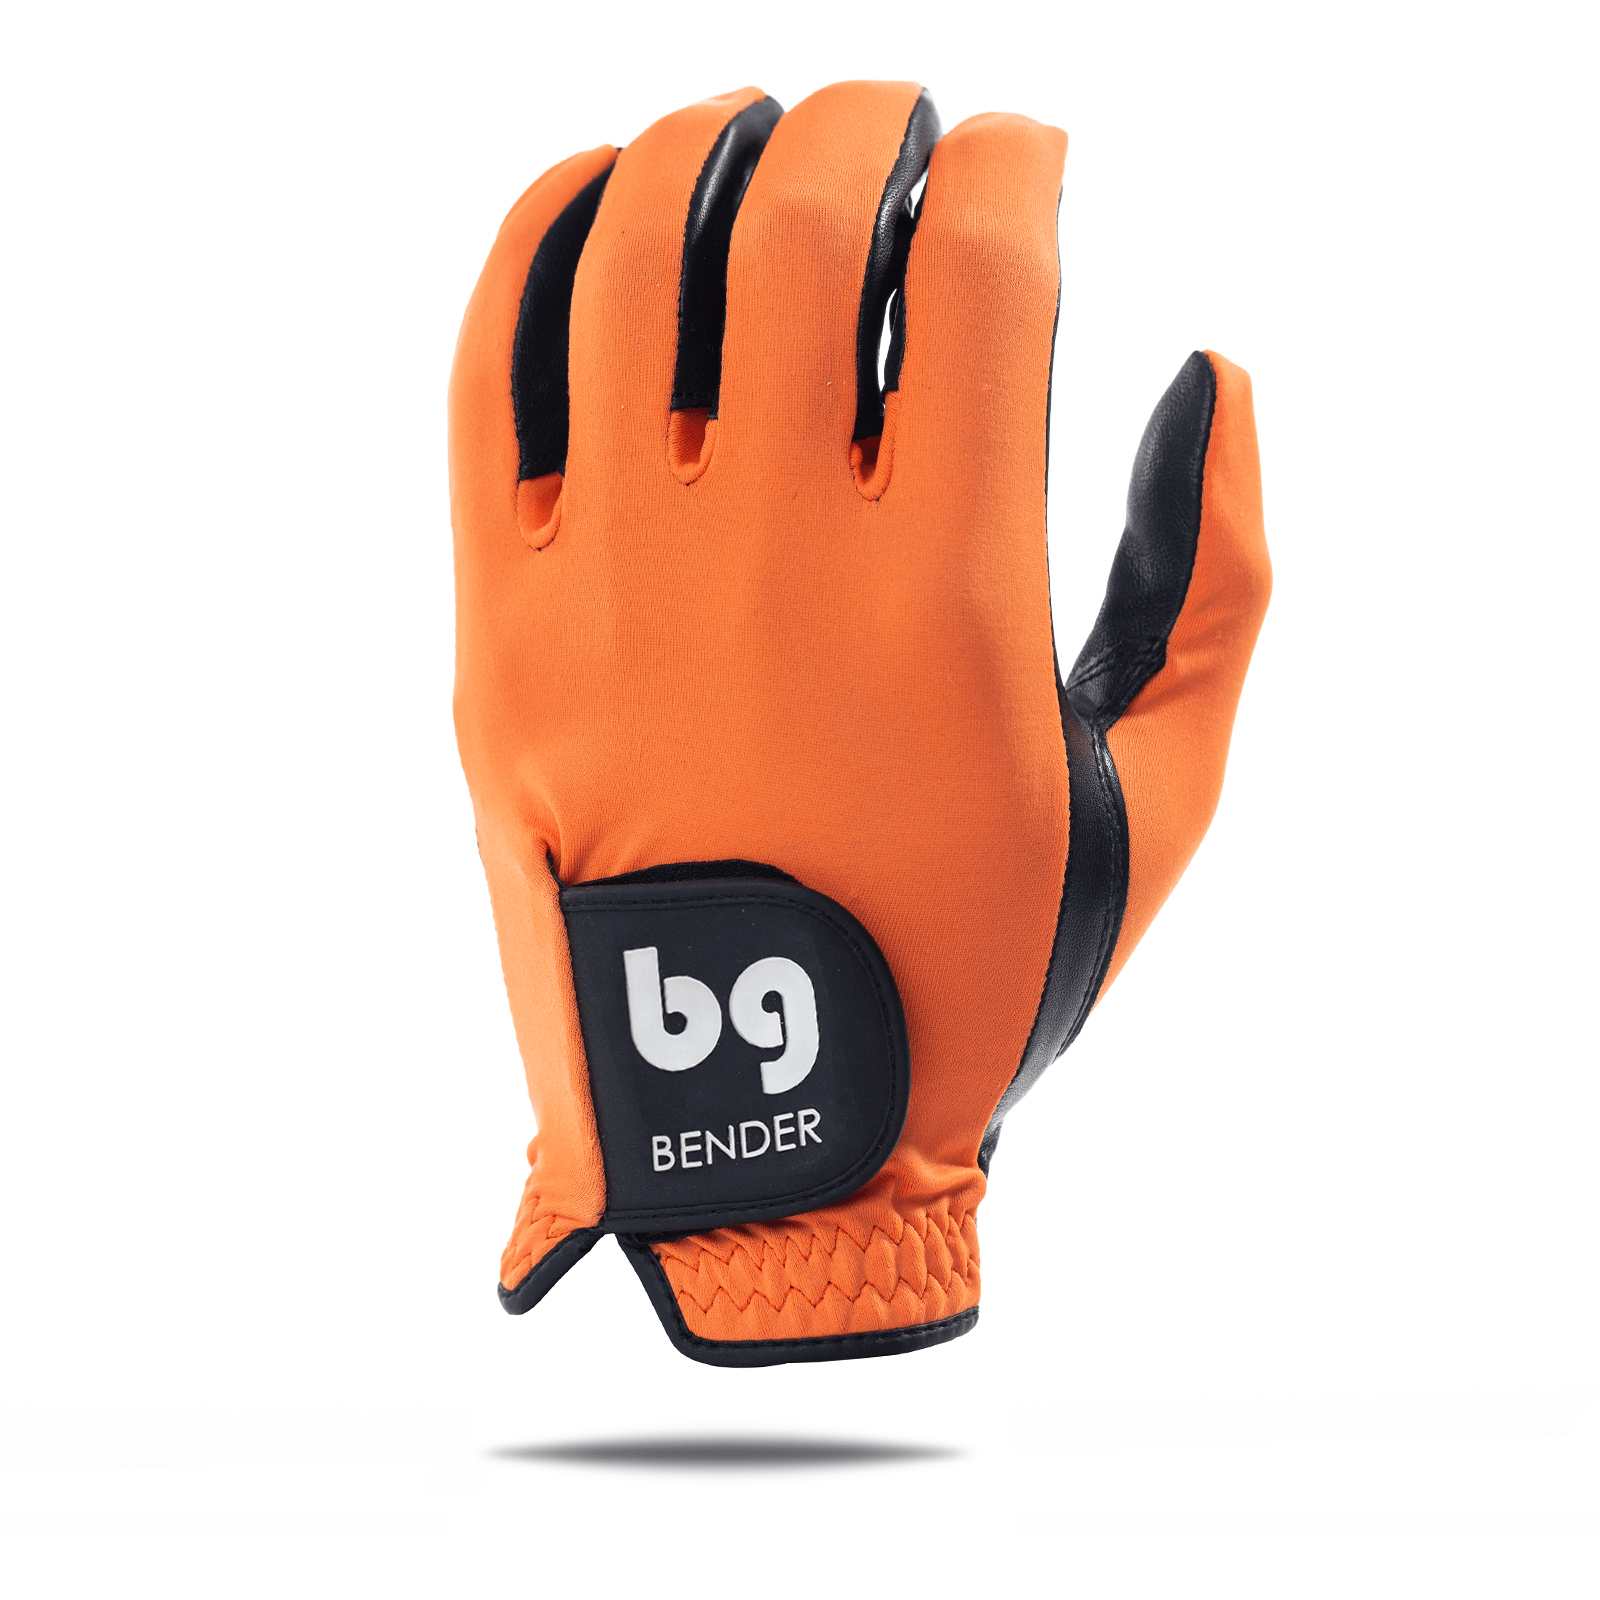 Orange Spandex Golf Glove